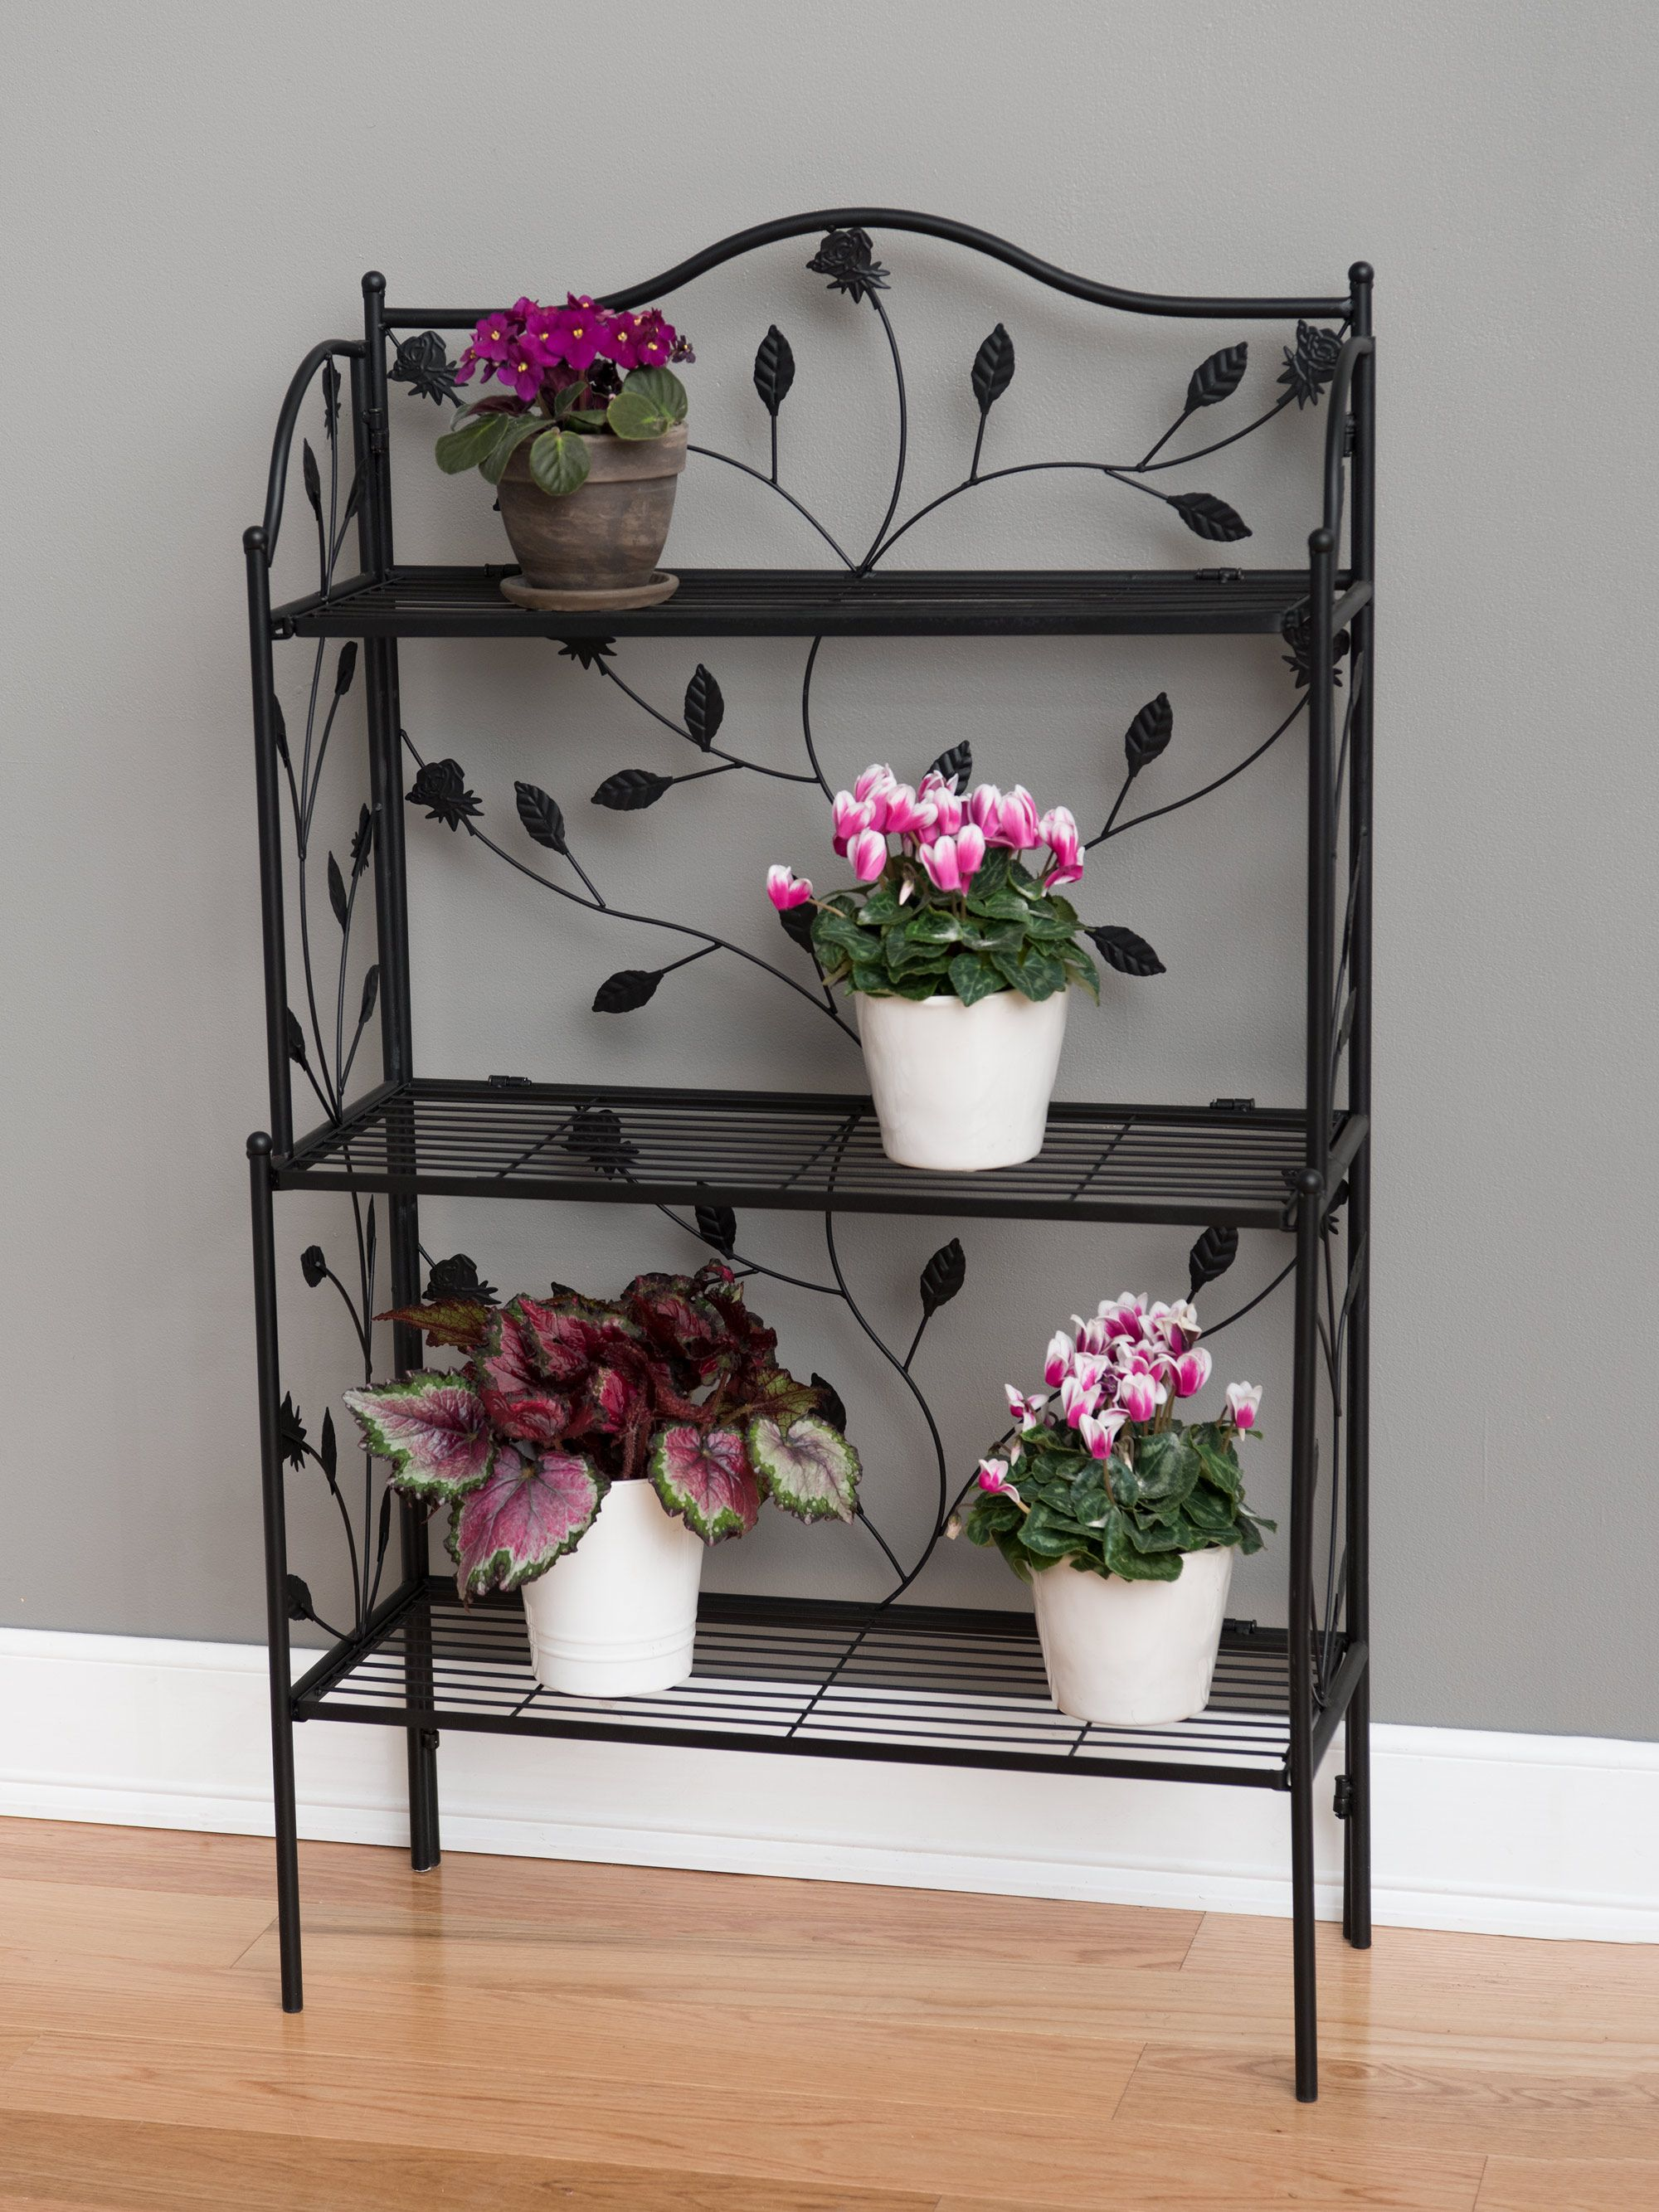 Baker S Rack 3 Tier Plant Stand Gardener S Supply With Images